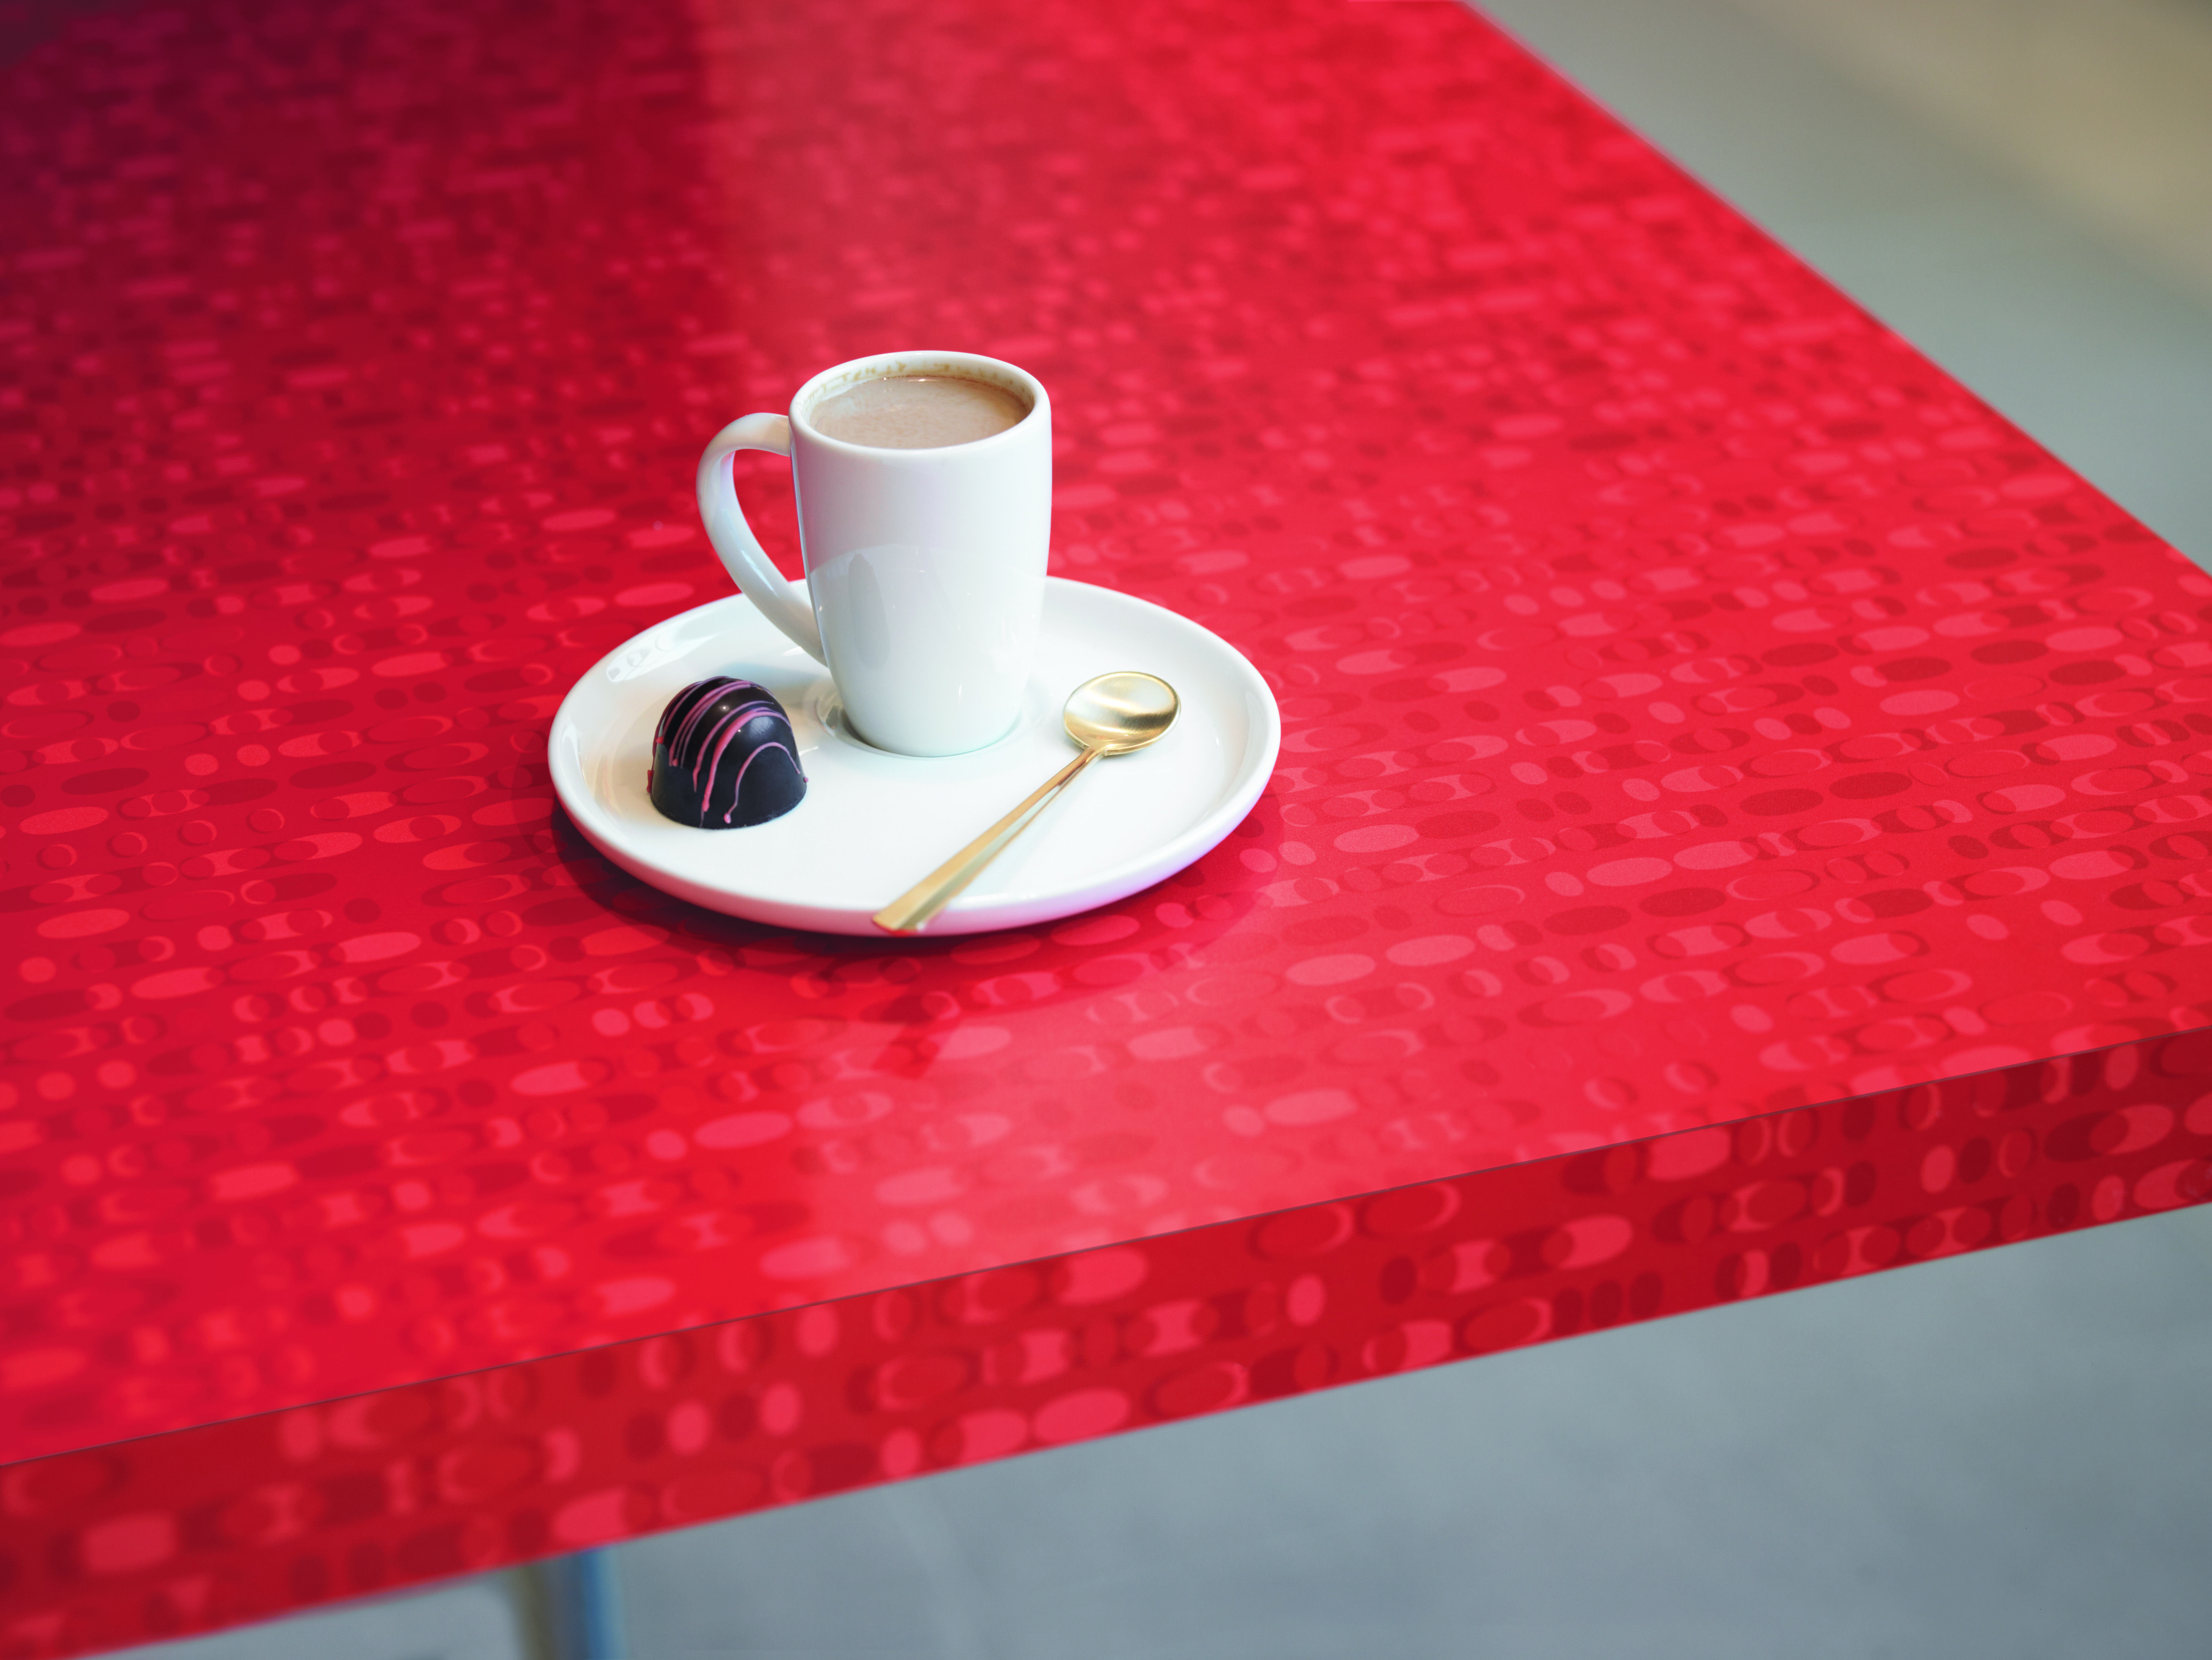 Formica Countertop In Red Eclipse For More Information Go To Www